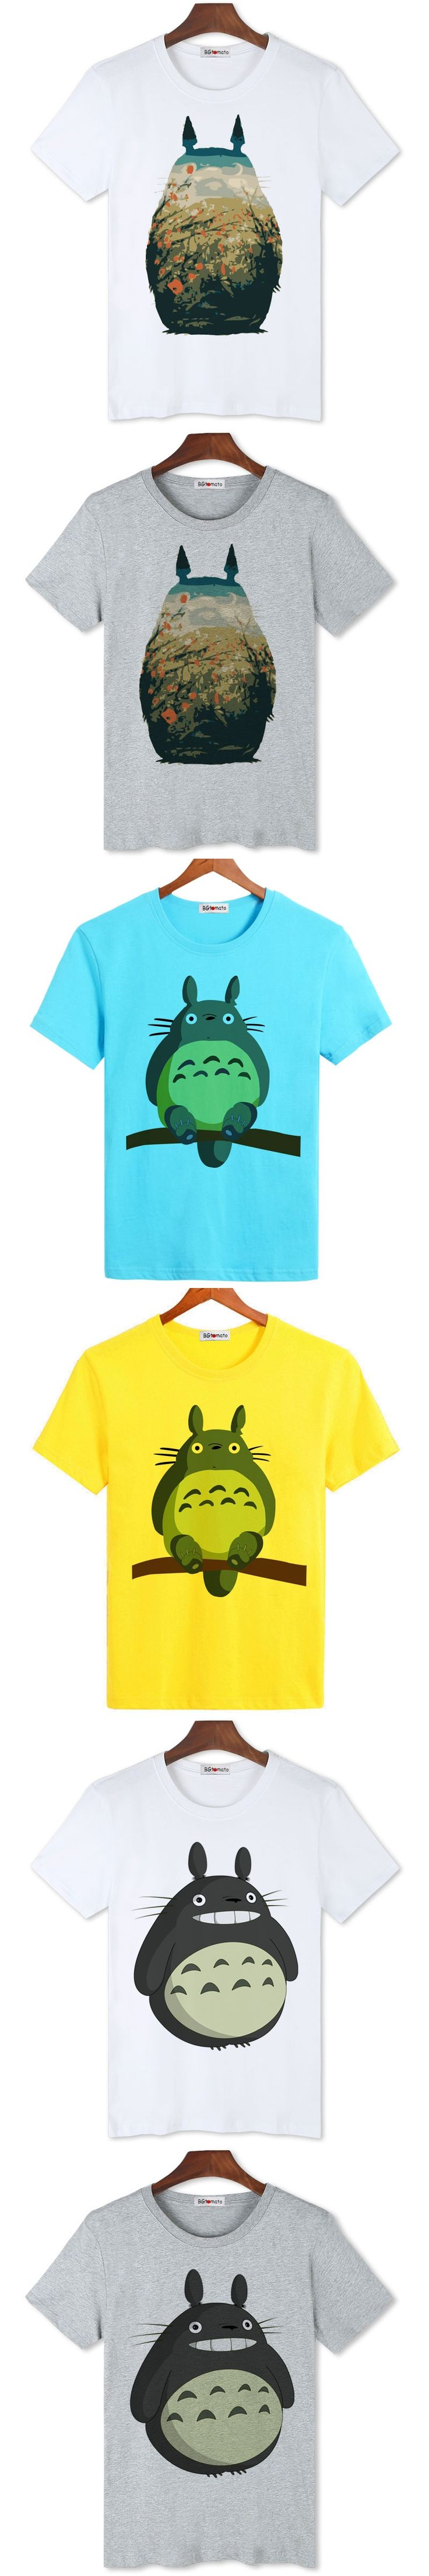 BGtomato T shirt super fashion cool Totoro anime t shirt men's popular cartoon cat shirt Original brand good quality tee shirt